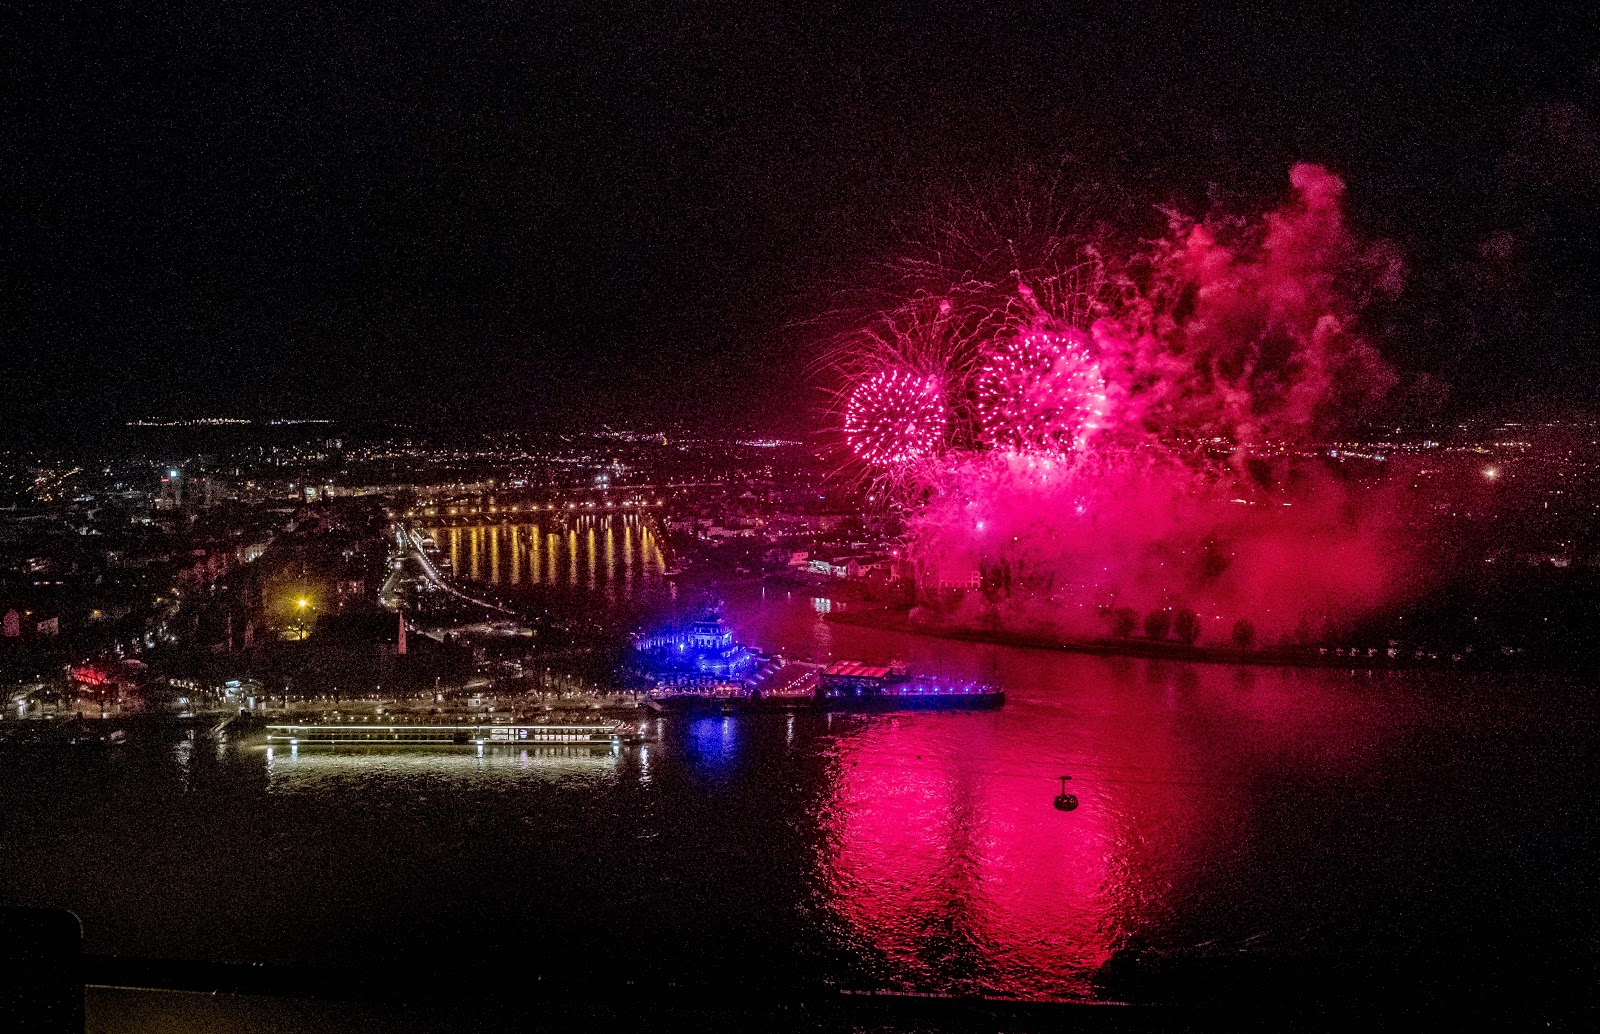 Fireworks lit up the night in Koblenz, Germany, last week as seen from the Ehrenbreitstein Fortress across the Rhine River. Photo: © Viking Cruises. Unauthorized use is prohibited.